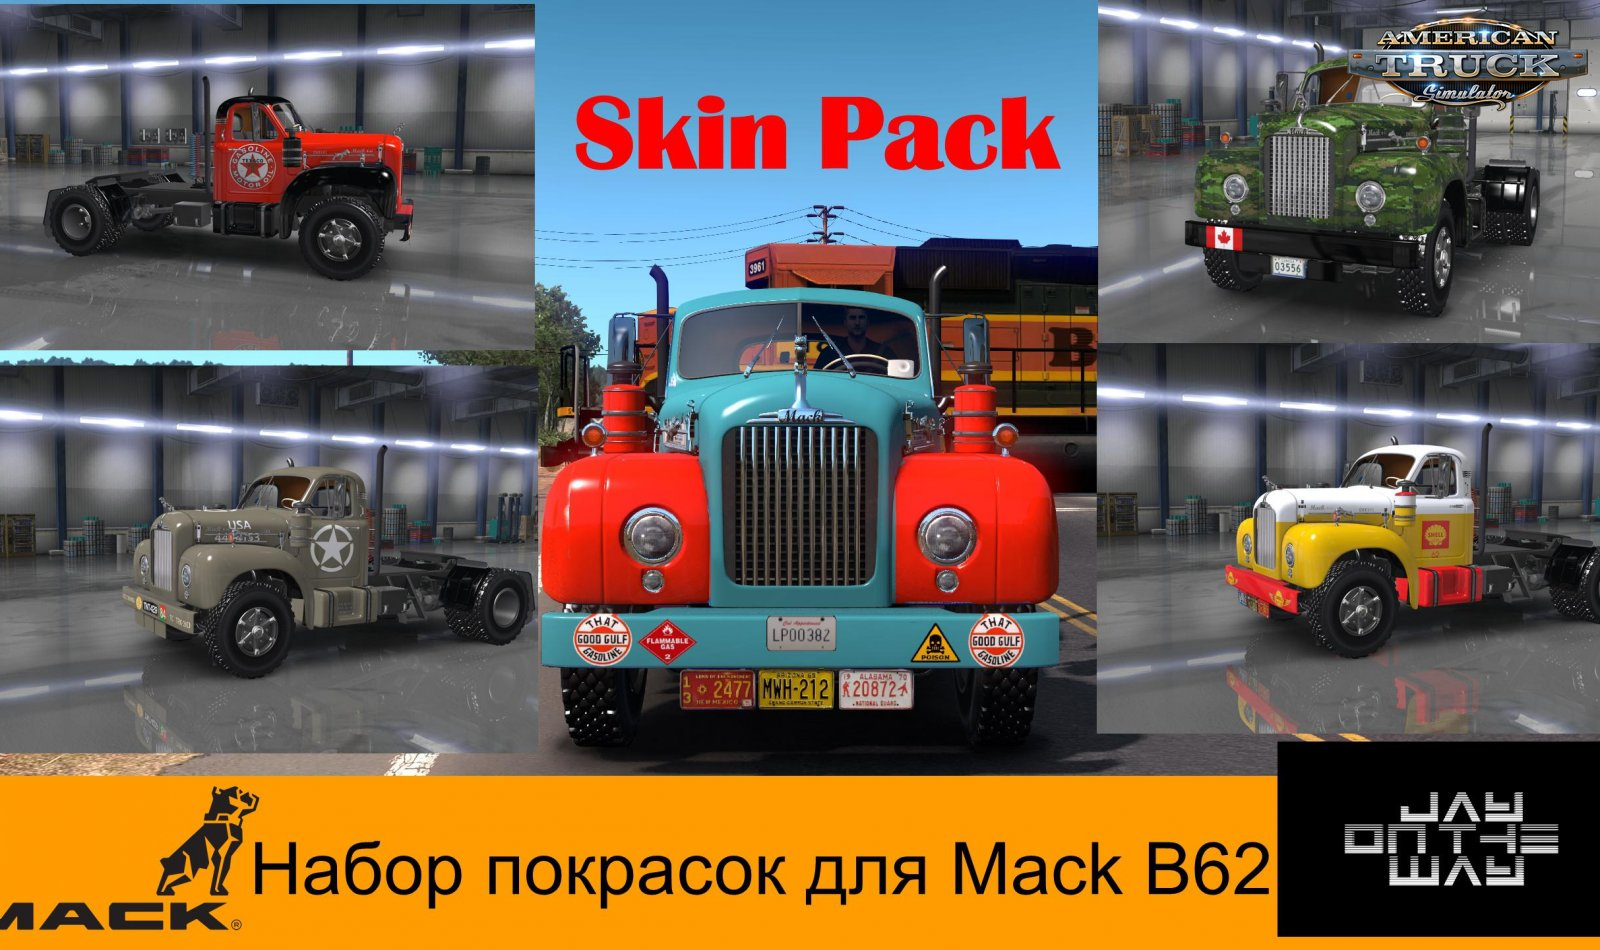 Skins Pack for Mack B62 Truck v1.0 (1.37.x)